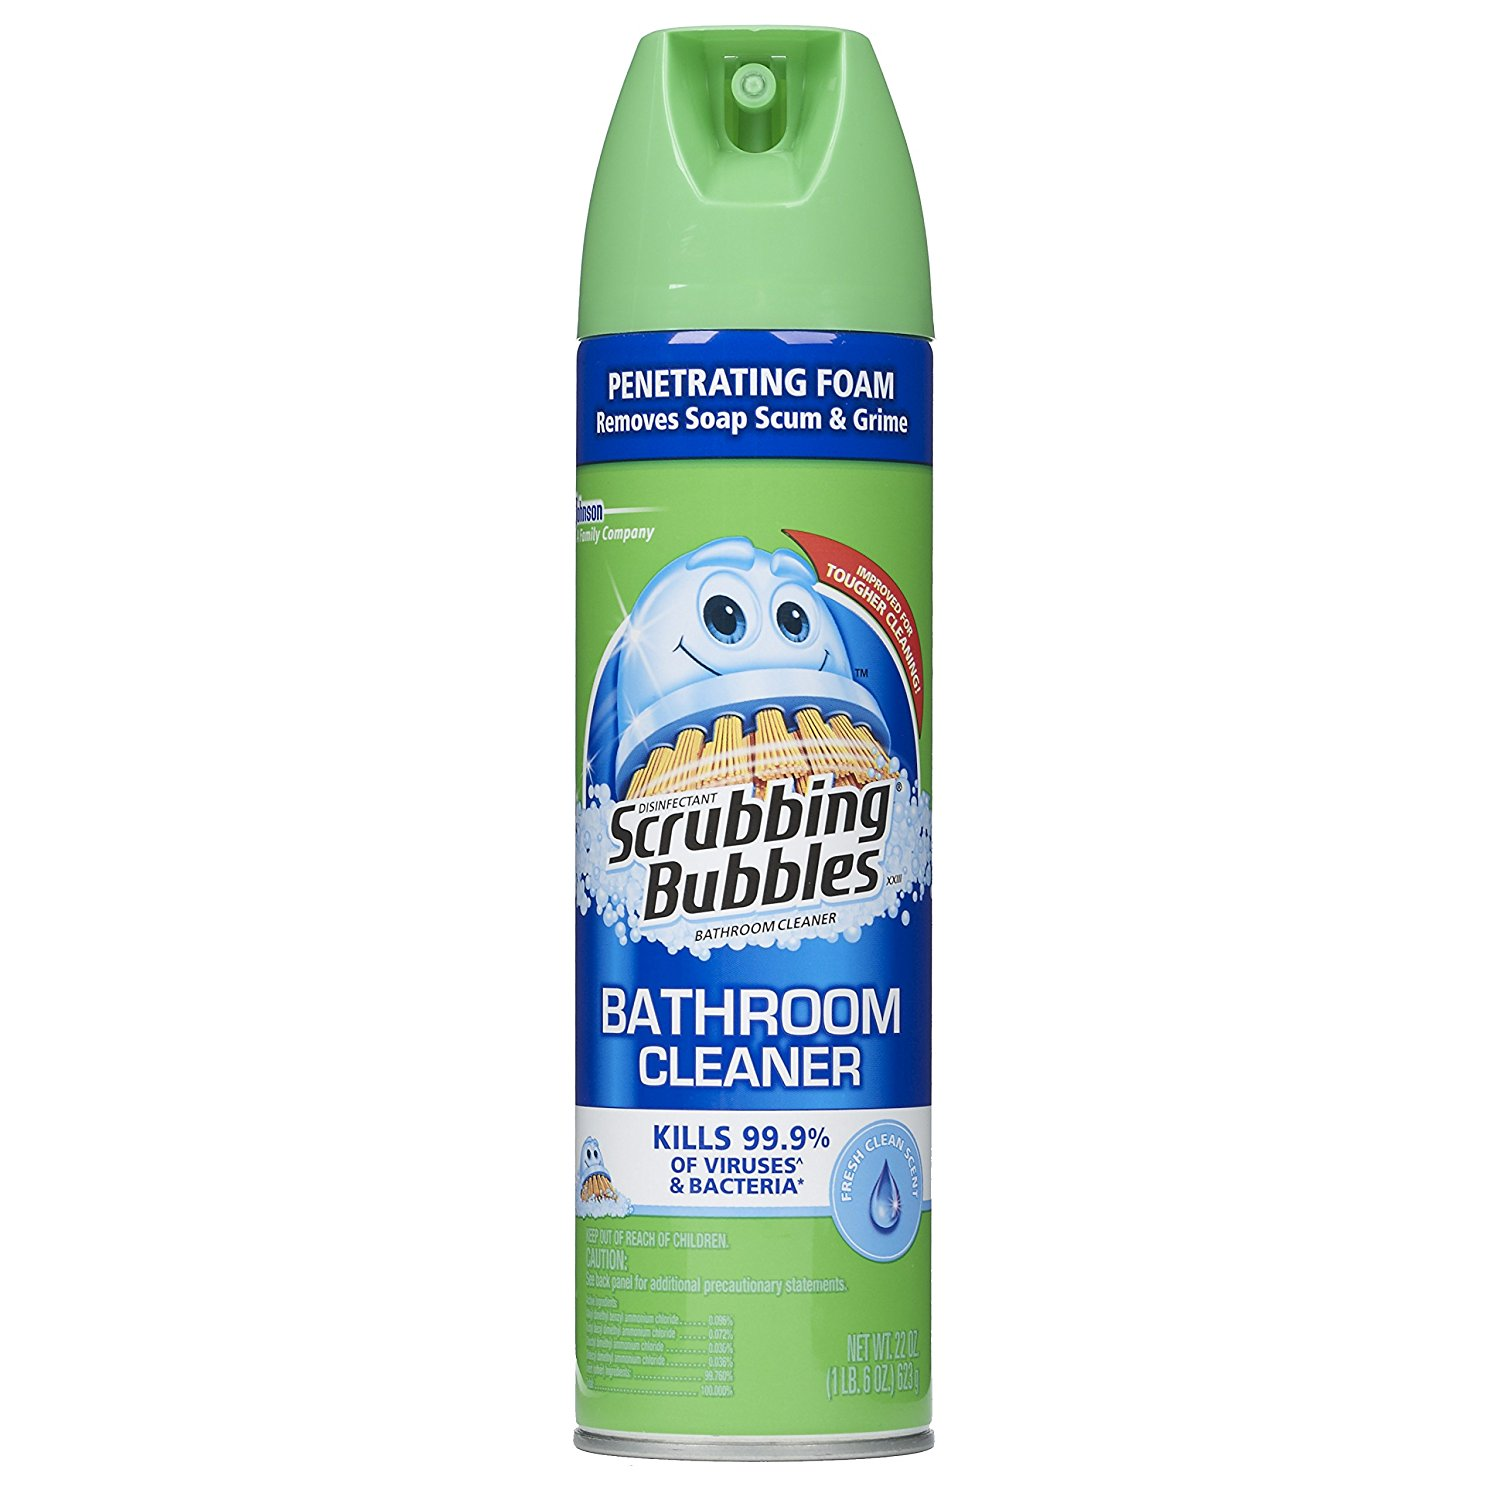 Scrubbing Bubbles Disinfectant Bathroom Cleaner